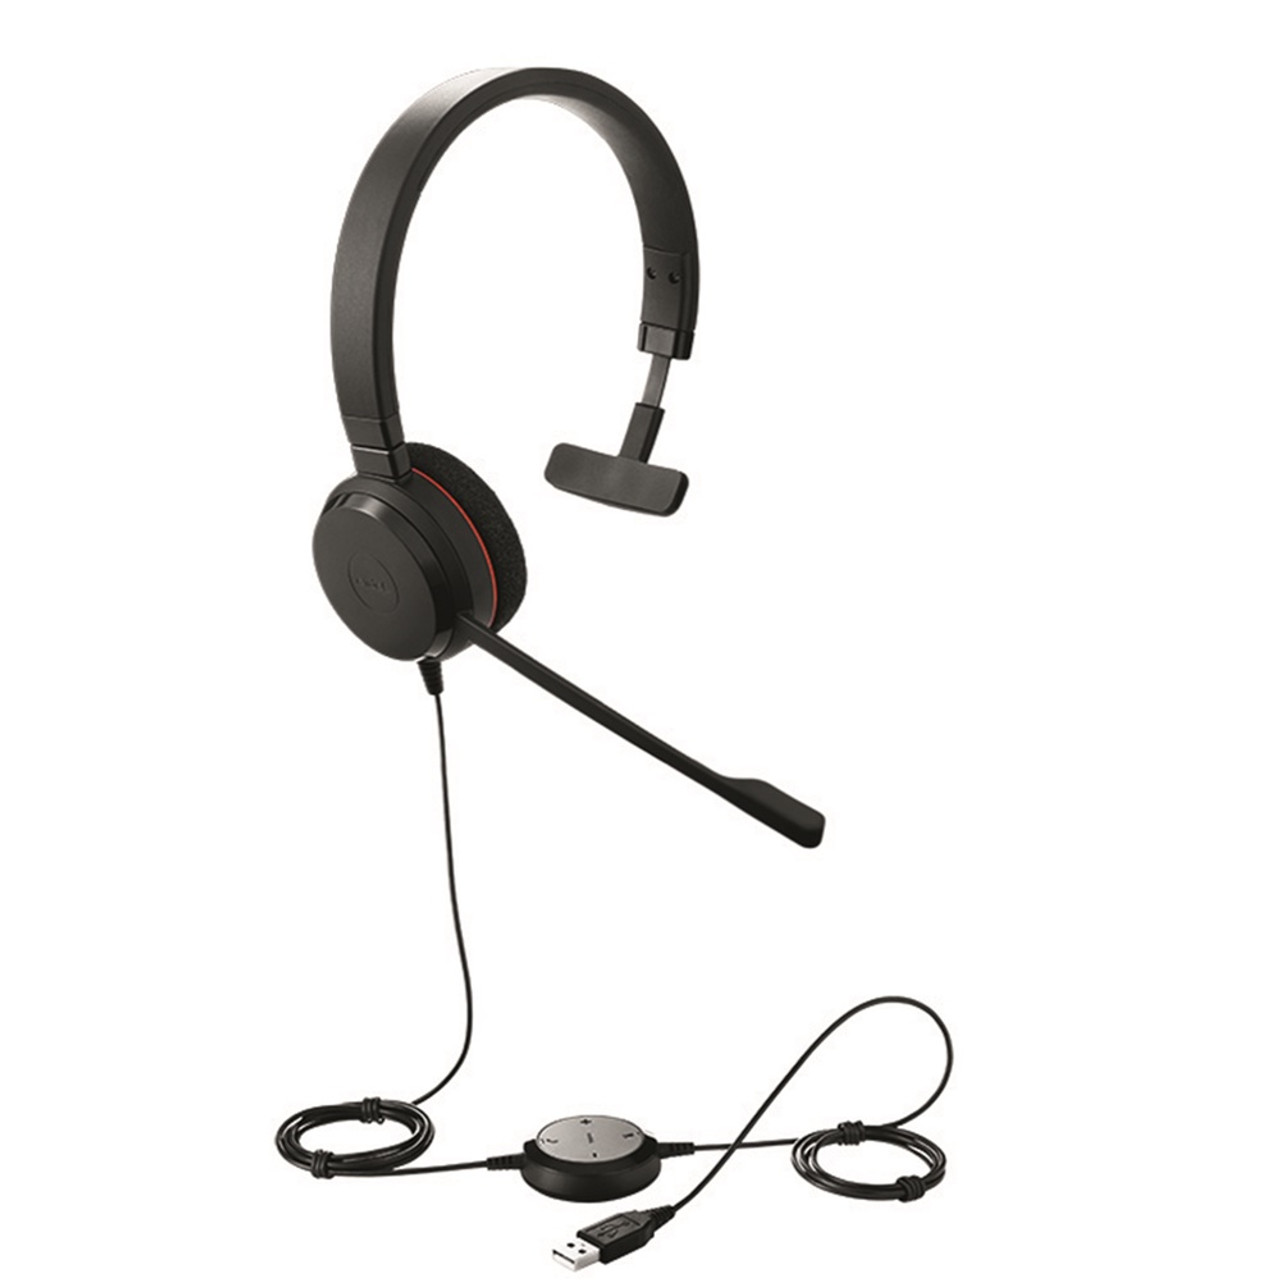 Jabra Evolve 20 Uc Mono Usb Headset Optimized For Unified Communications 4993 829 209